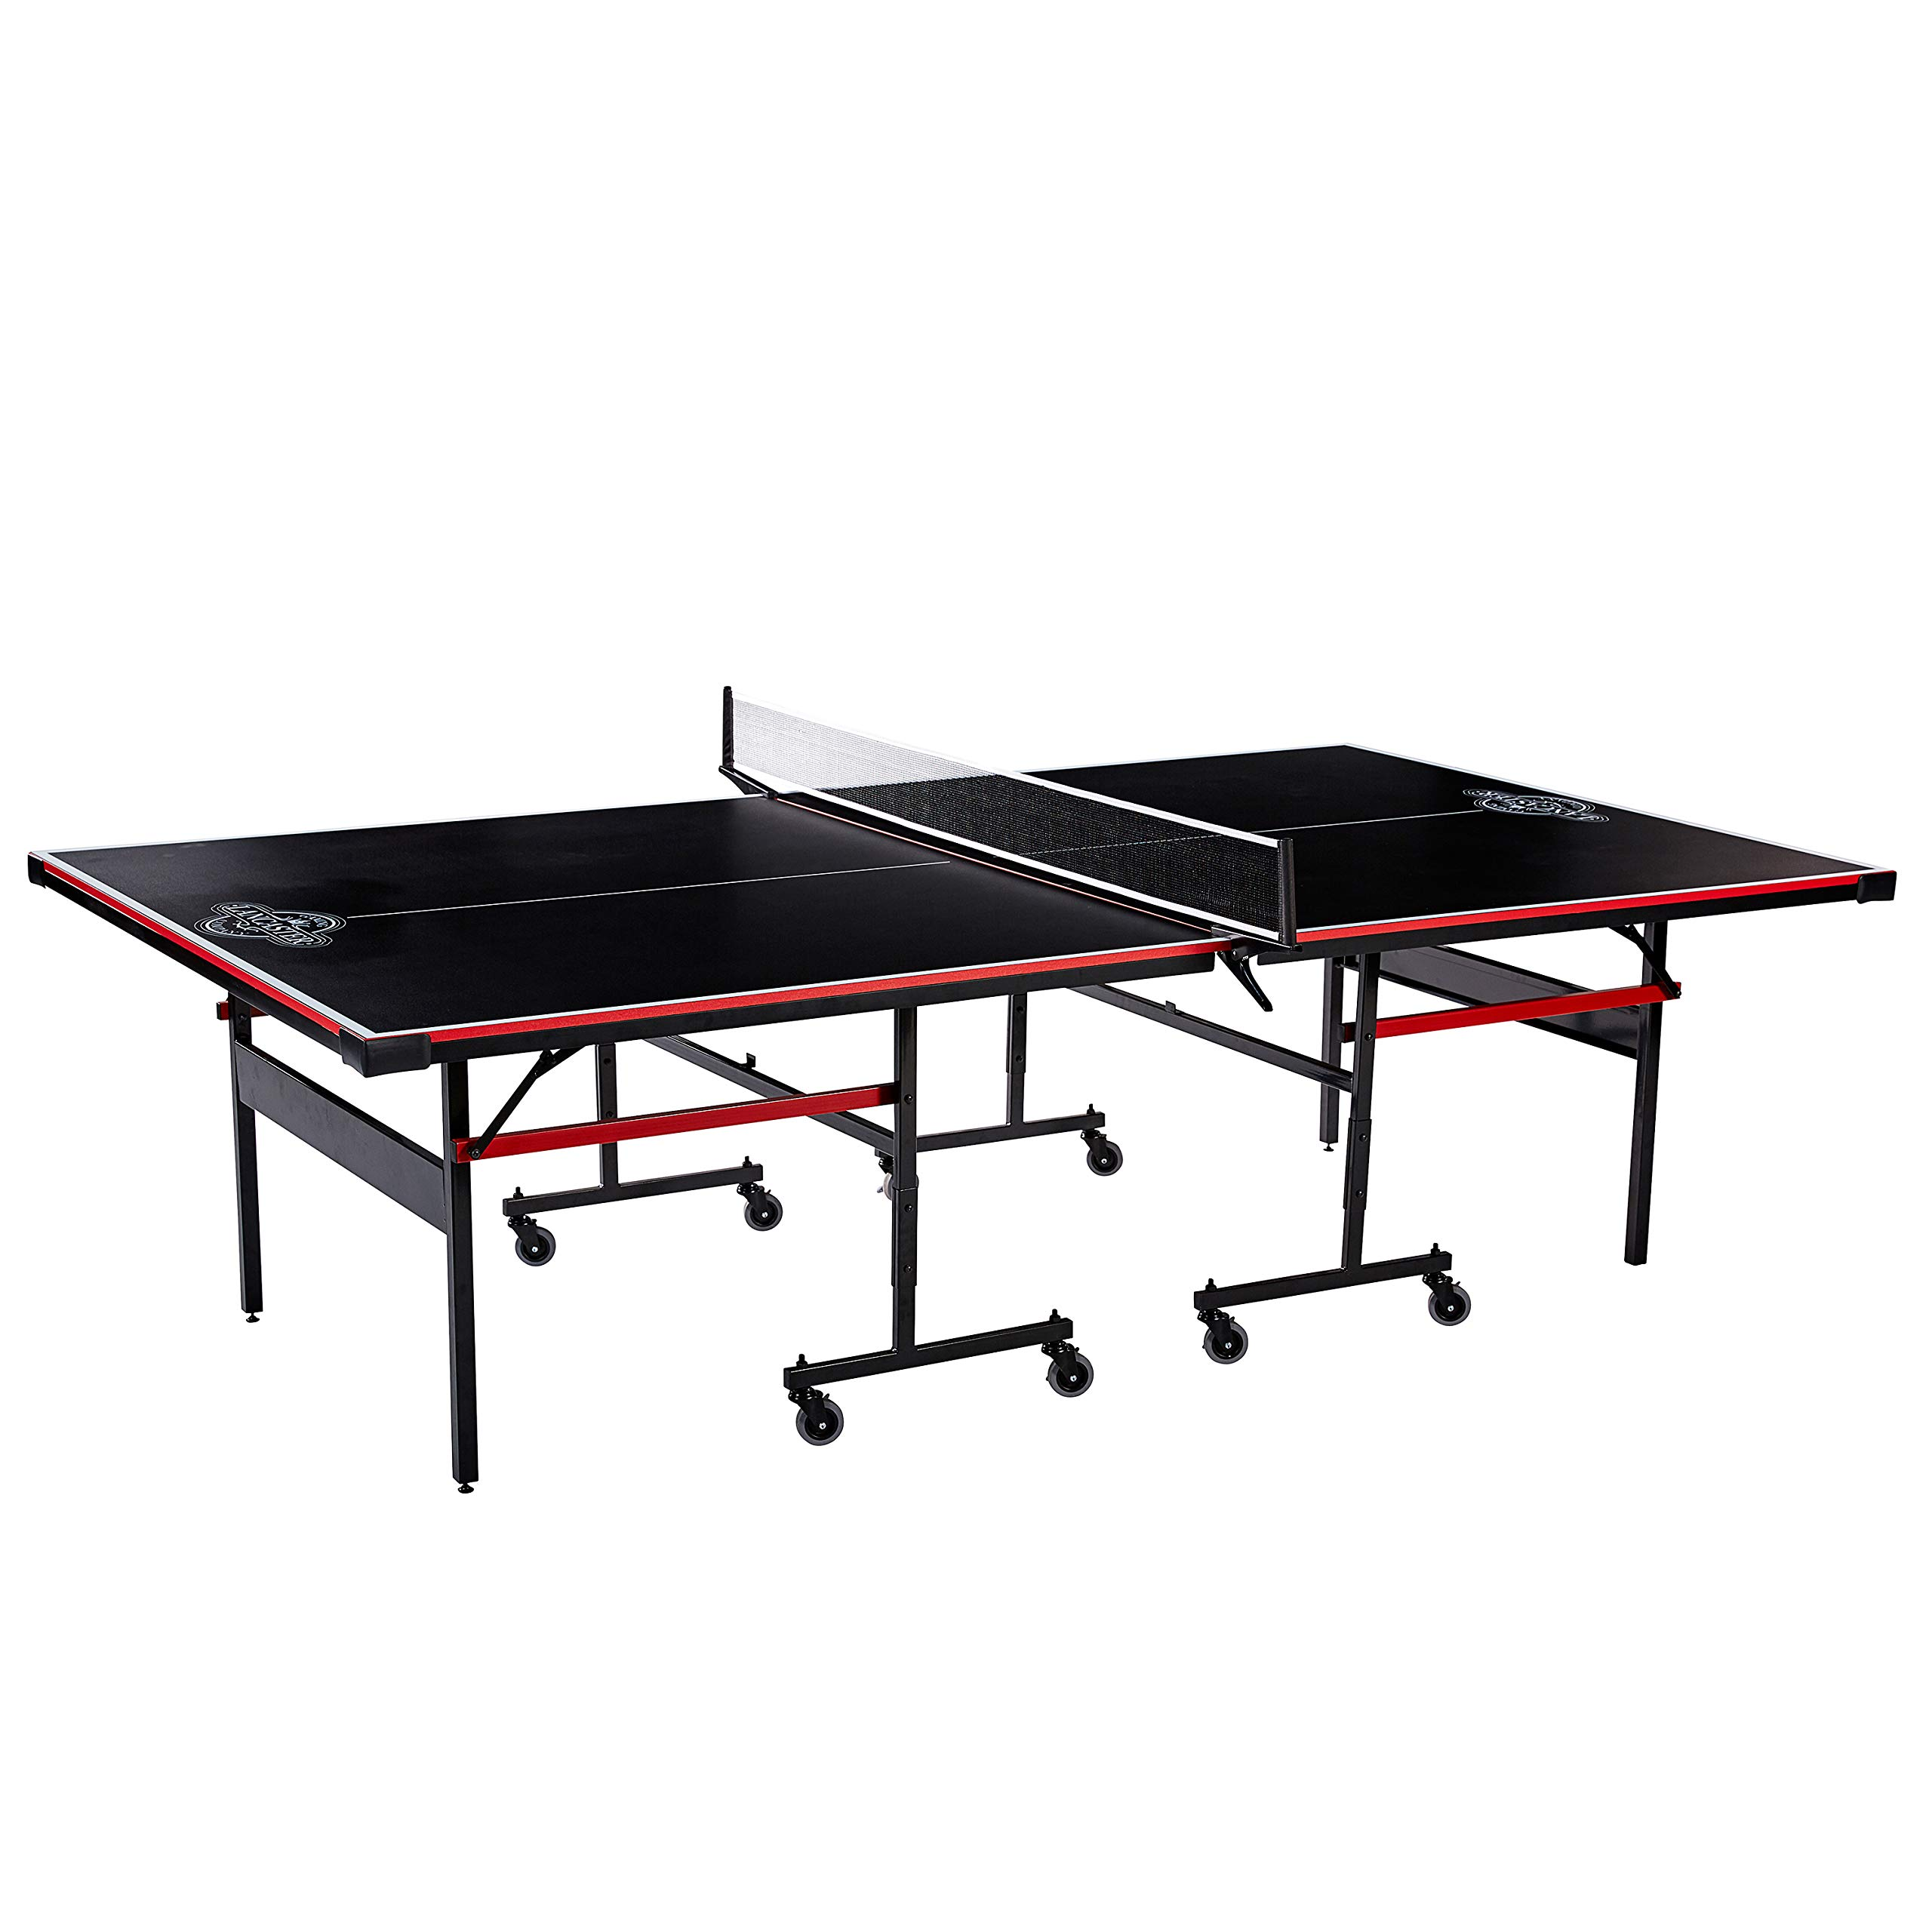 Lancaster Easy to Assemble Compact Portable Indoor 2 Piece Table Tennis Game by Lancaster Gaming Company